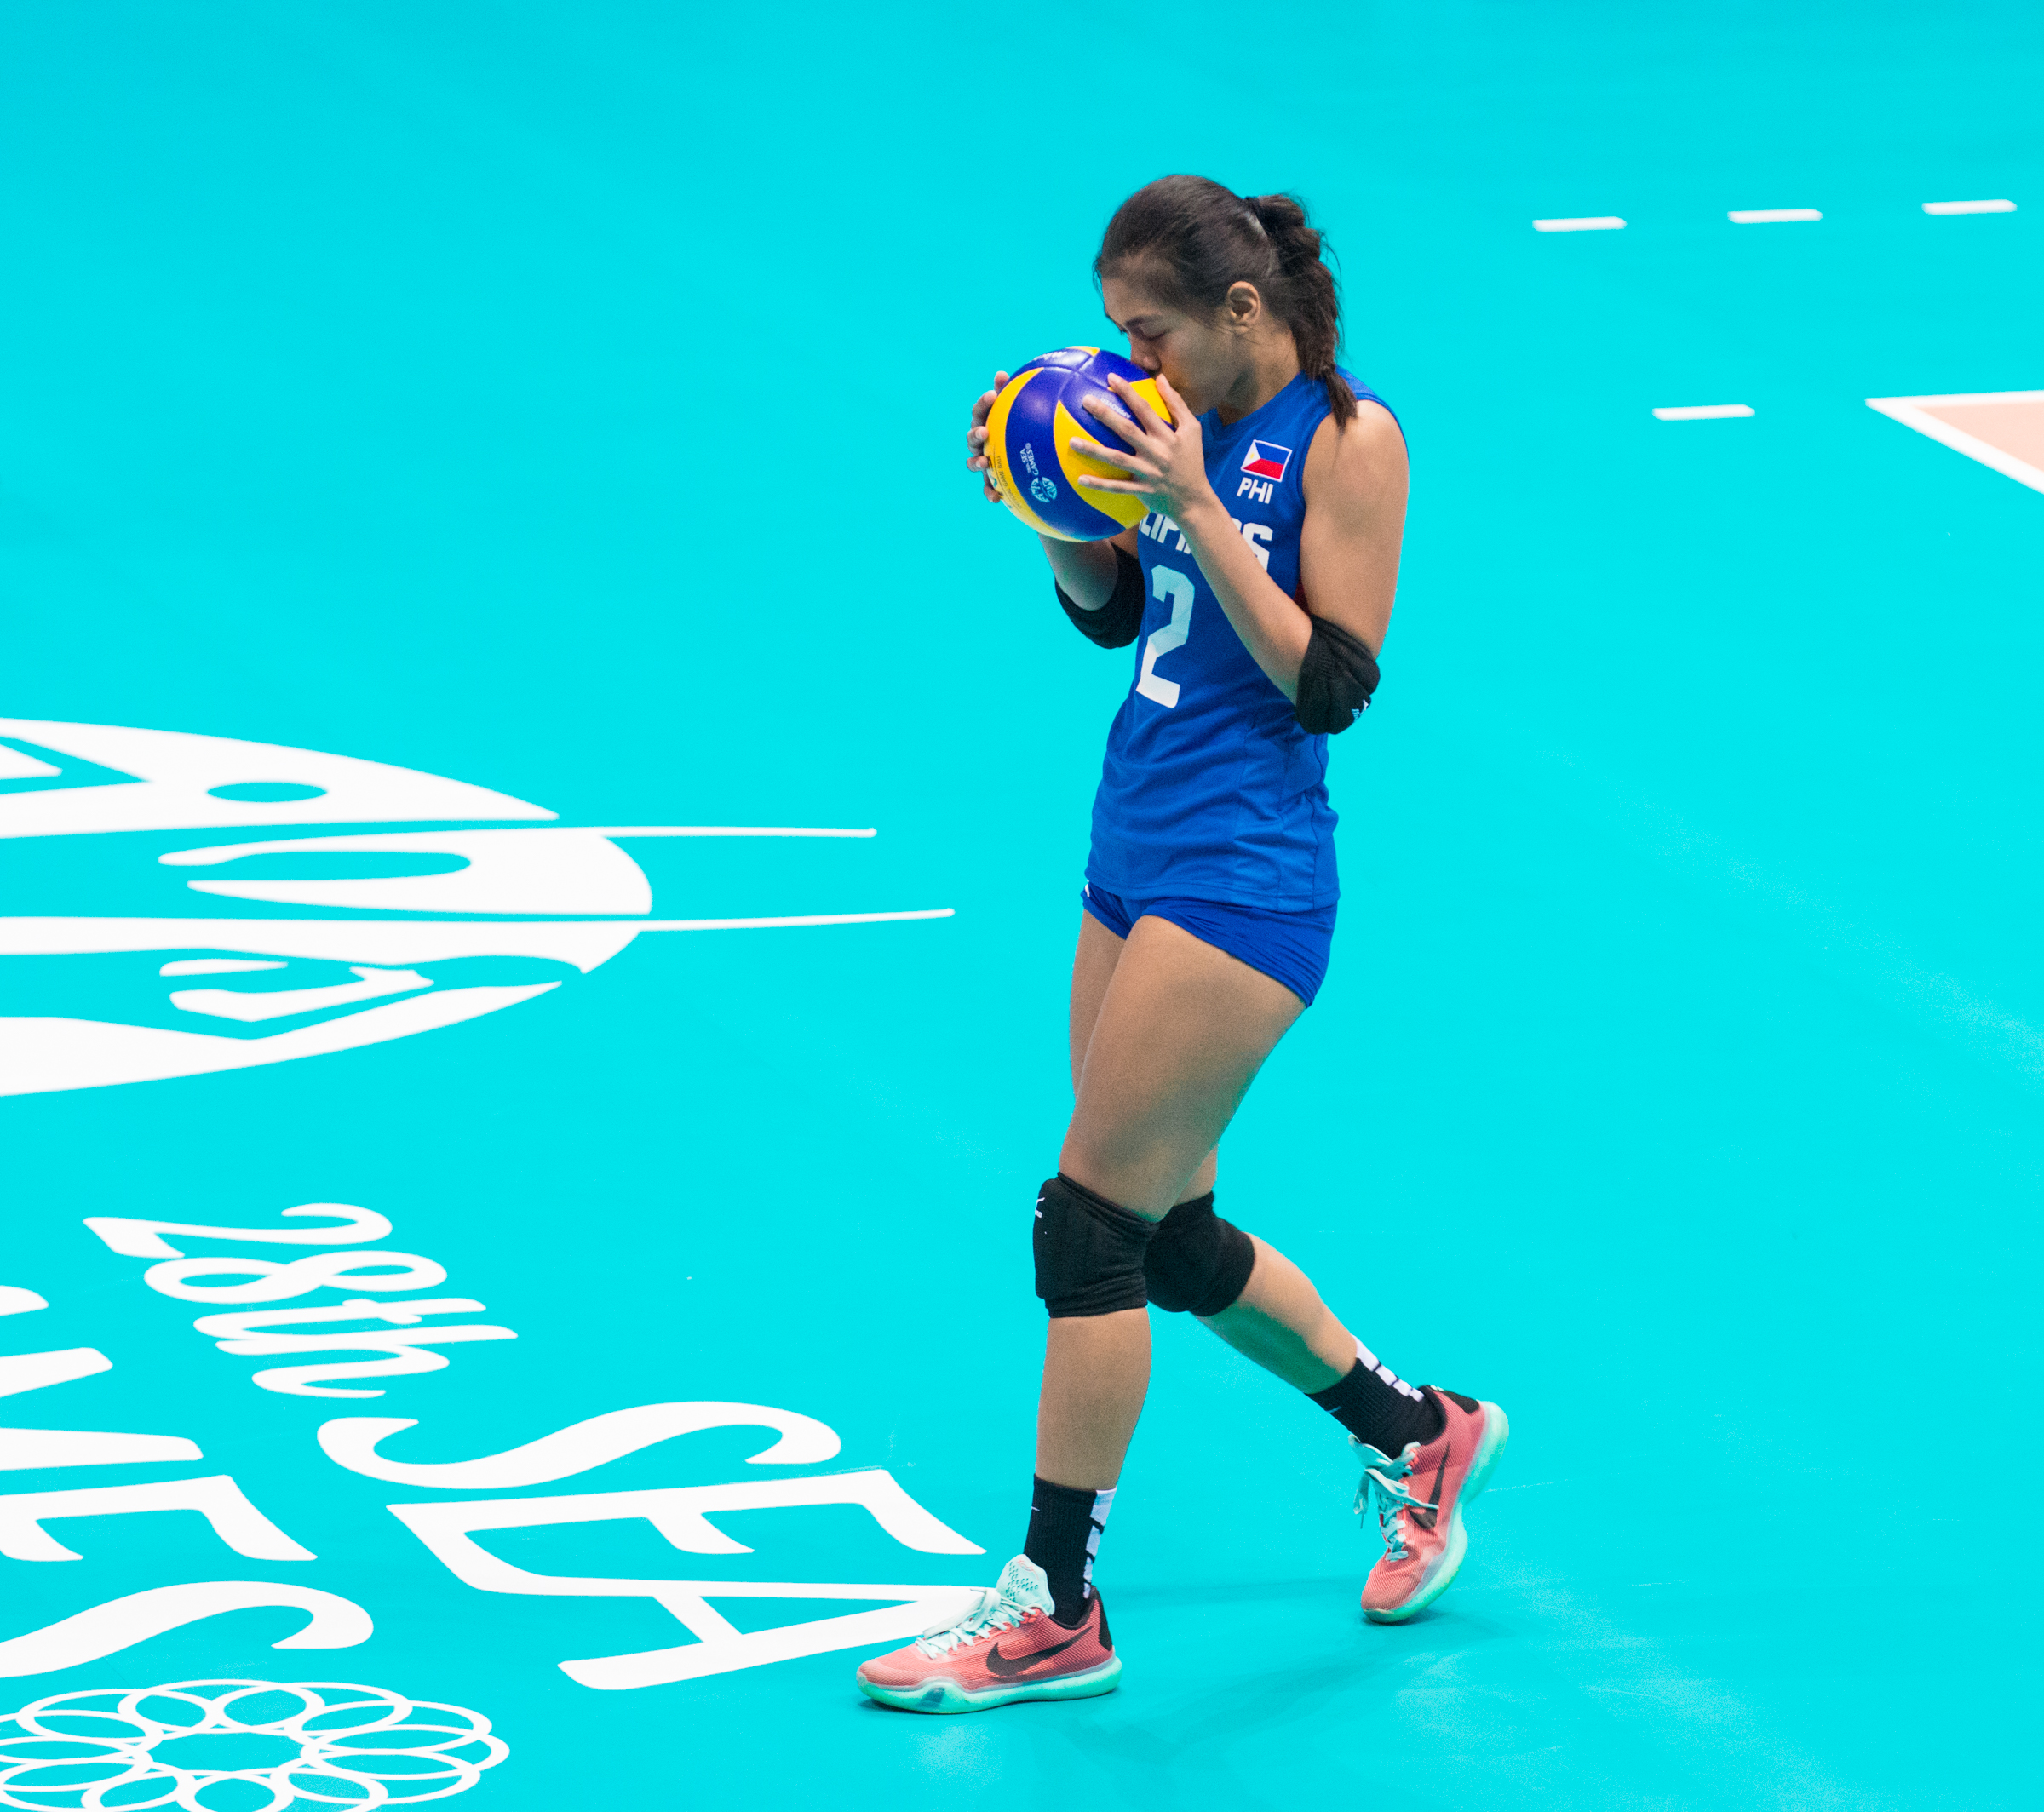 A Filipino player kisses the ball before a service during a match at the OCBC Arena.